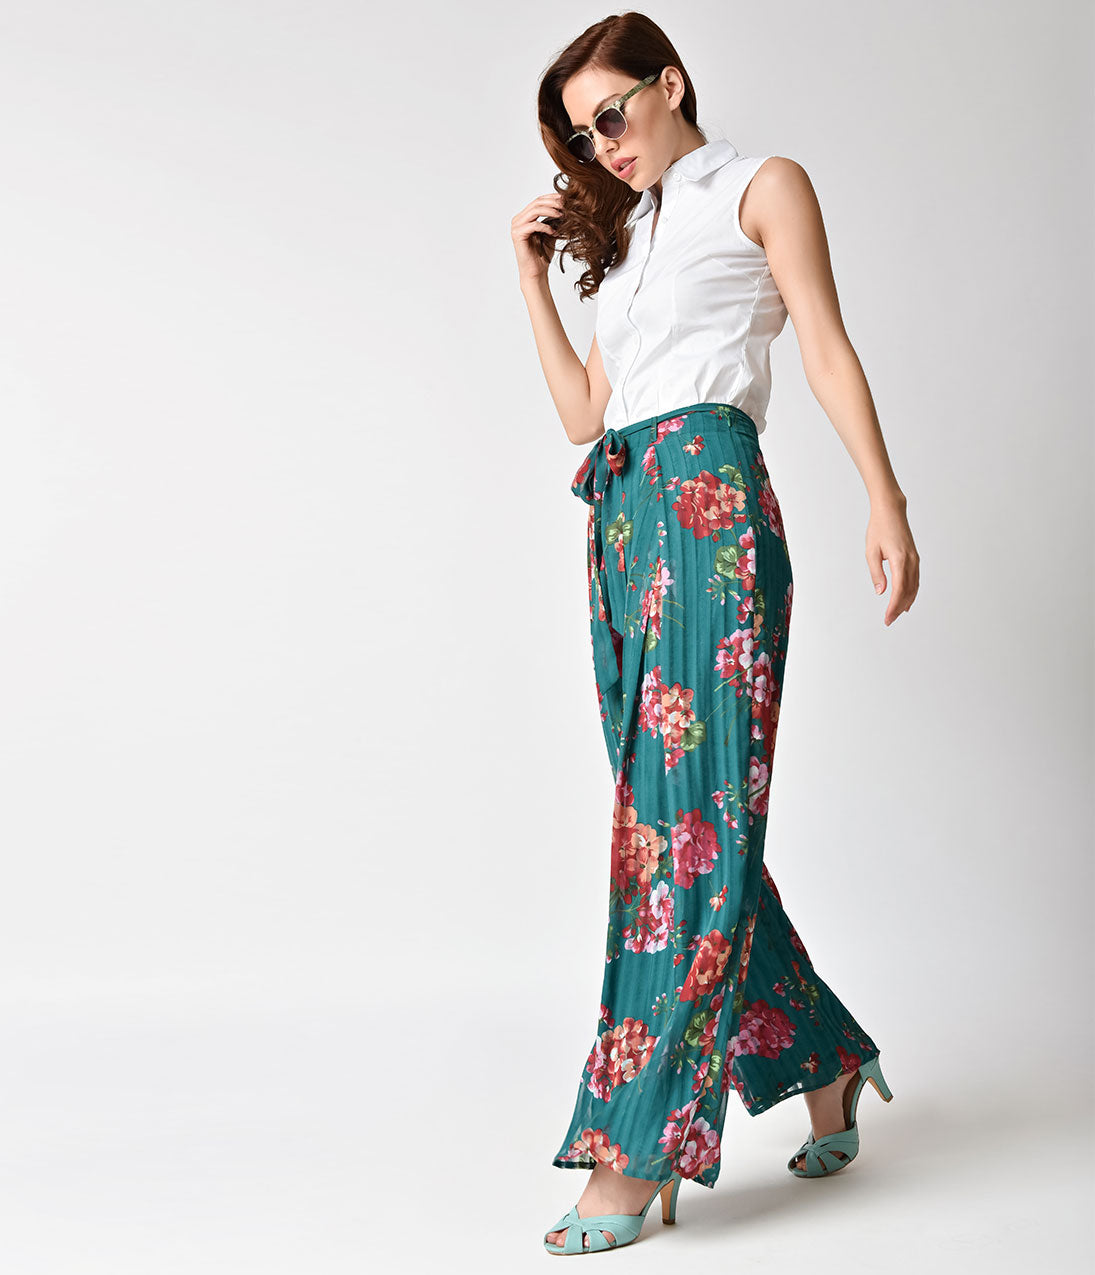 Vintage High Waisted Trousers, Sailor Pants, Jeans Retro Style Teal  Pink Floral Chiffon Wide Leg Pants $30.00 AT vintagedancer.com